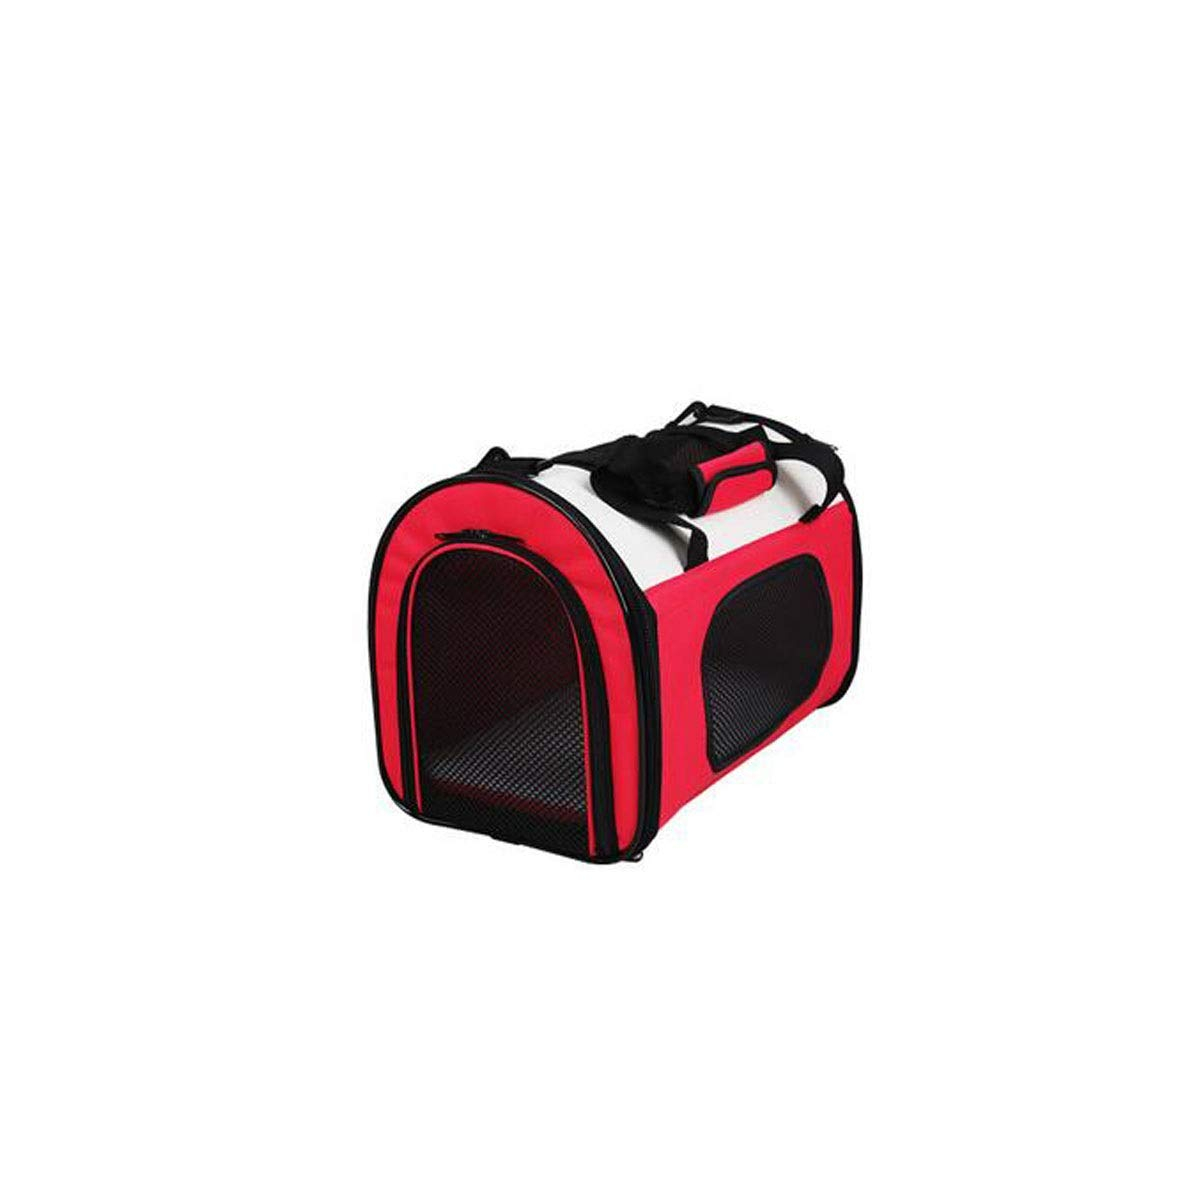 Red LargeCapacity Portable Pet Back, Pet Bag for Cats and Small Dogs,Brown, Red, (color   Red)